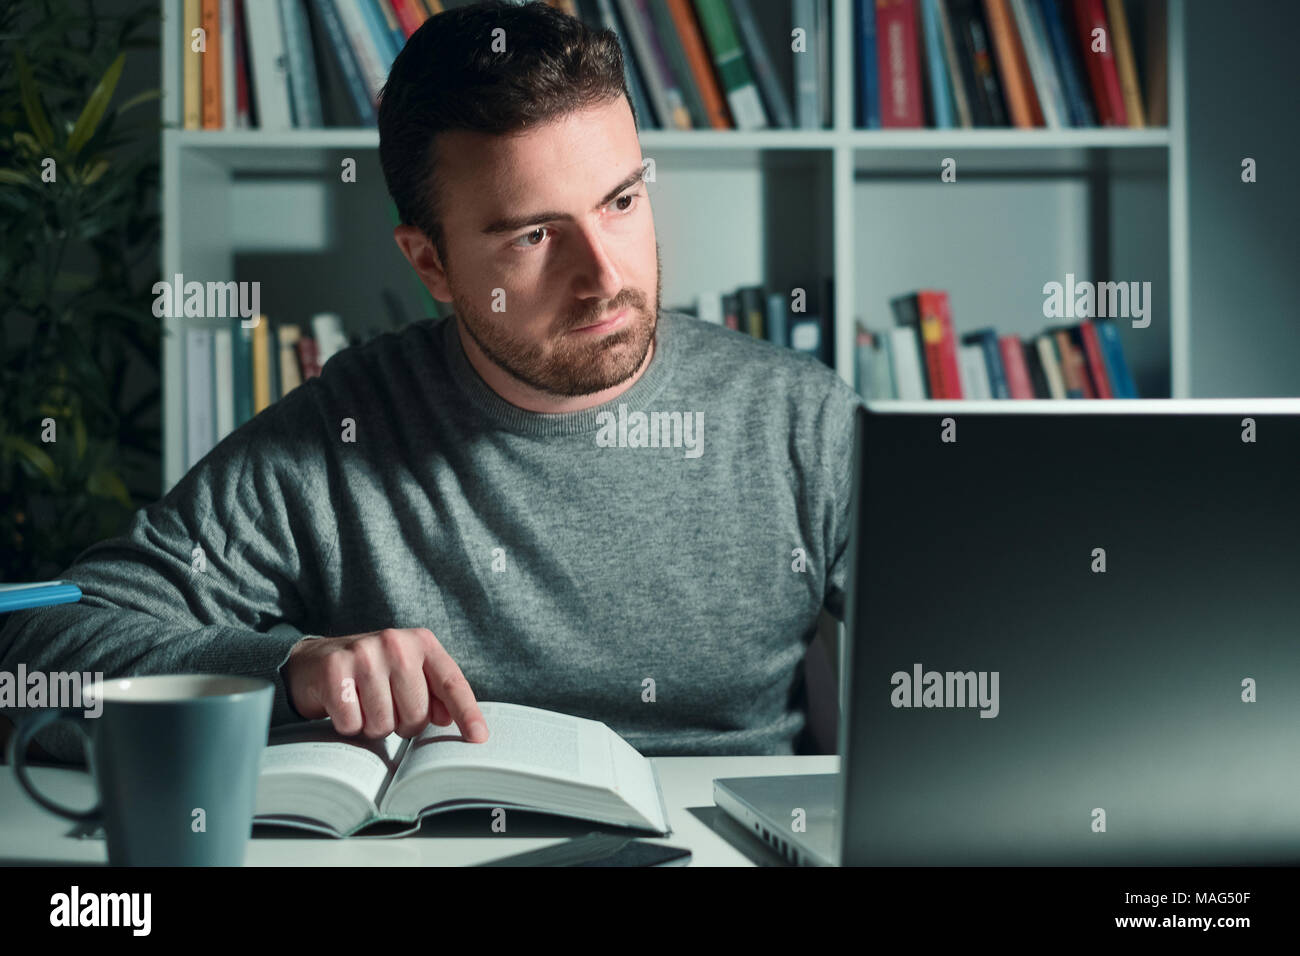 Man studying at night with book and computer - Stock Image